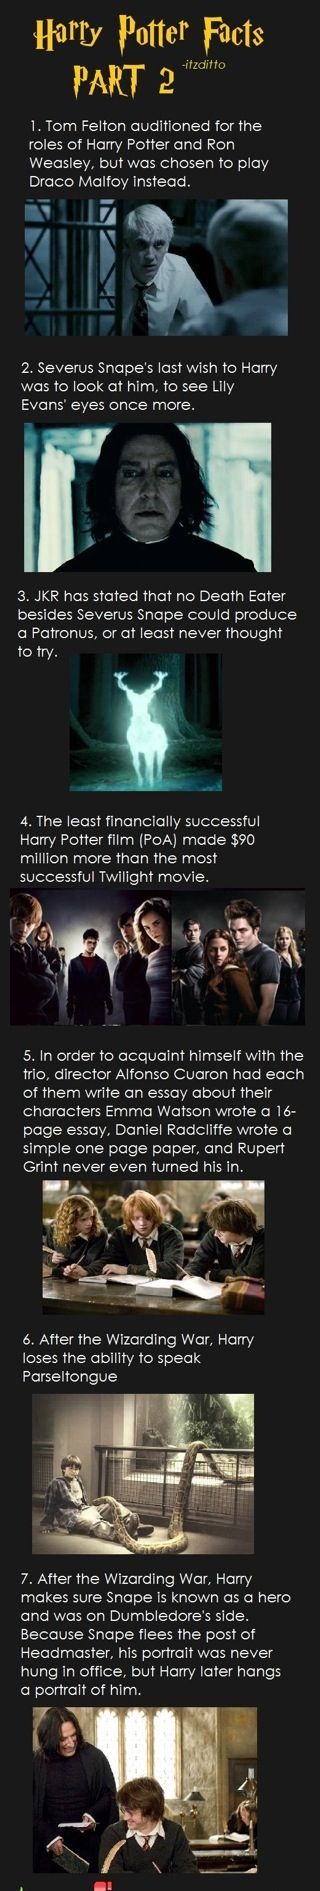 Harry Potter facts part 2 not sure abt some of these but I like the one abt snape